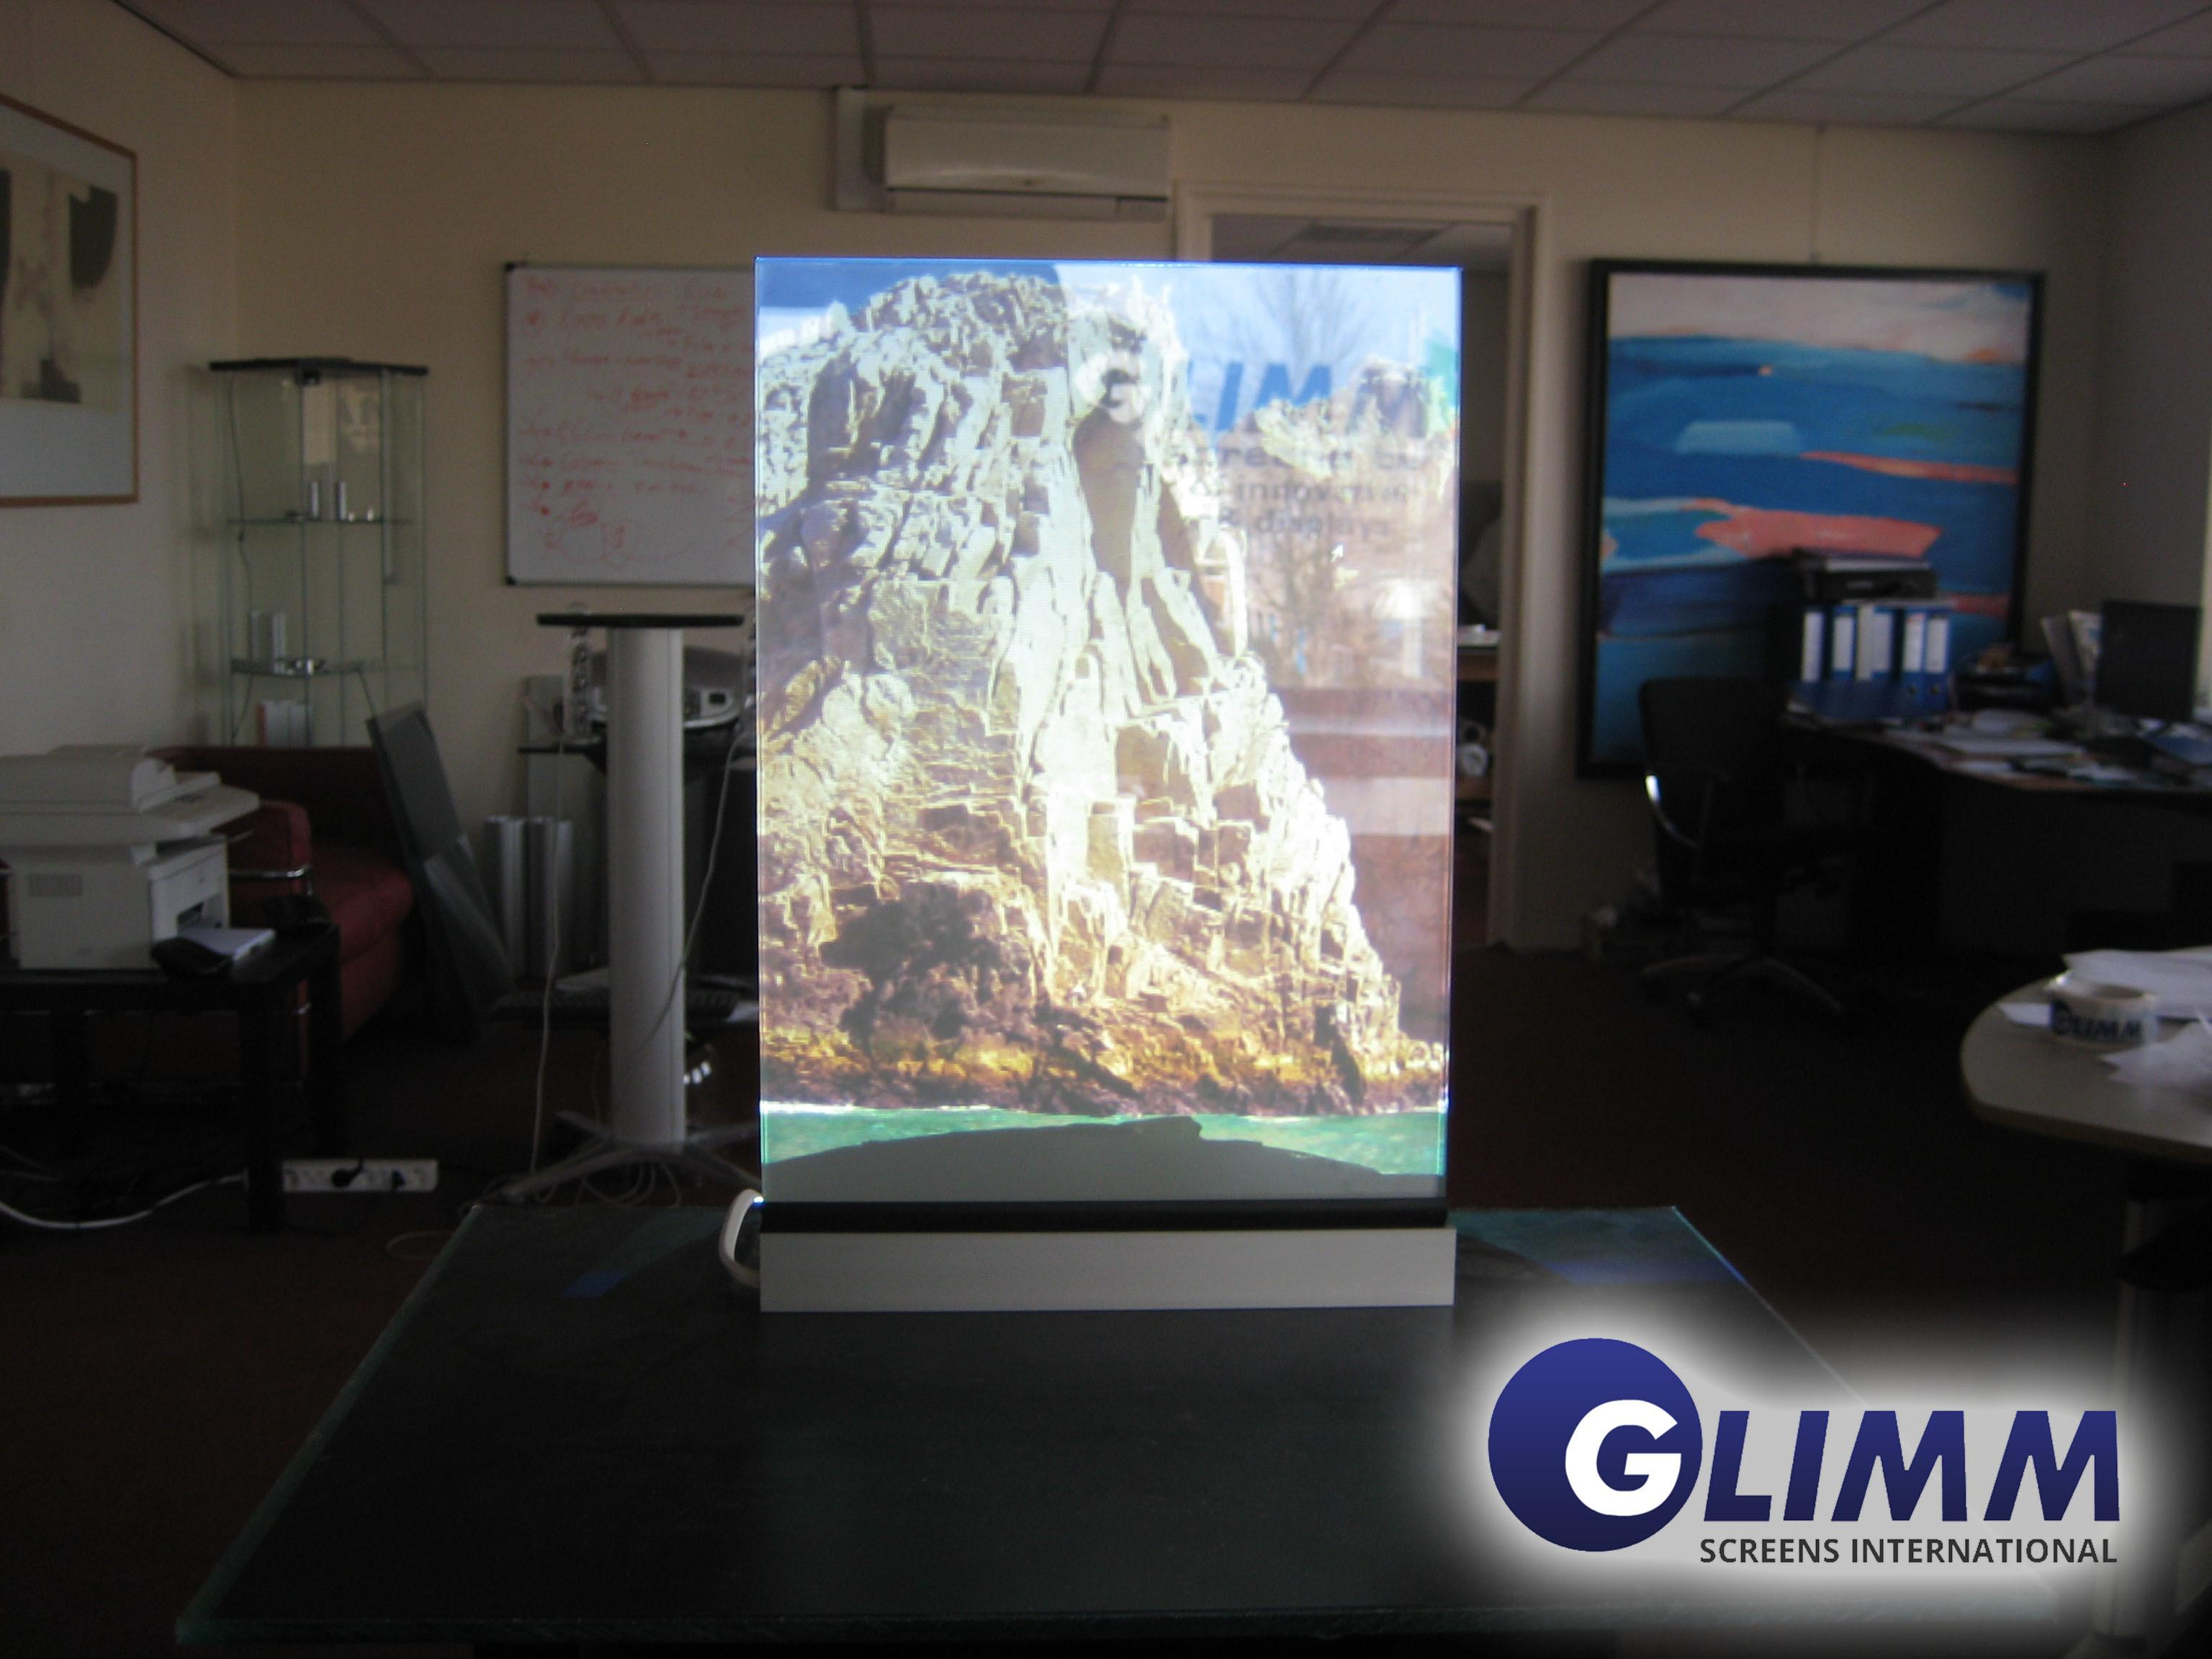 Smart Film Off2 Glimm Display